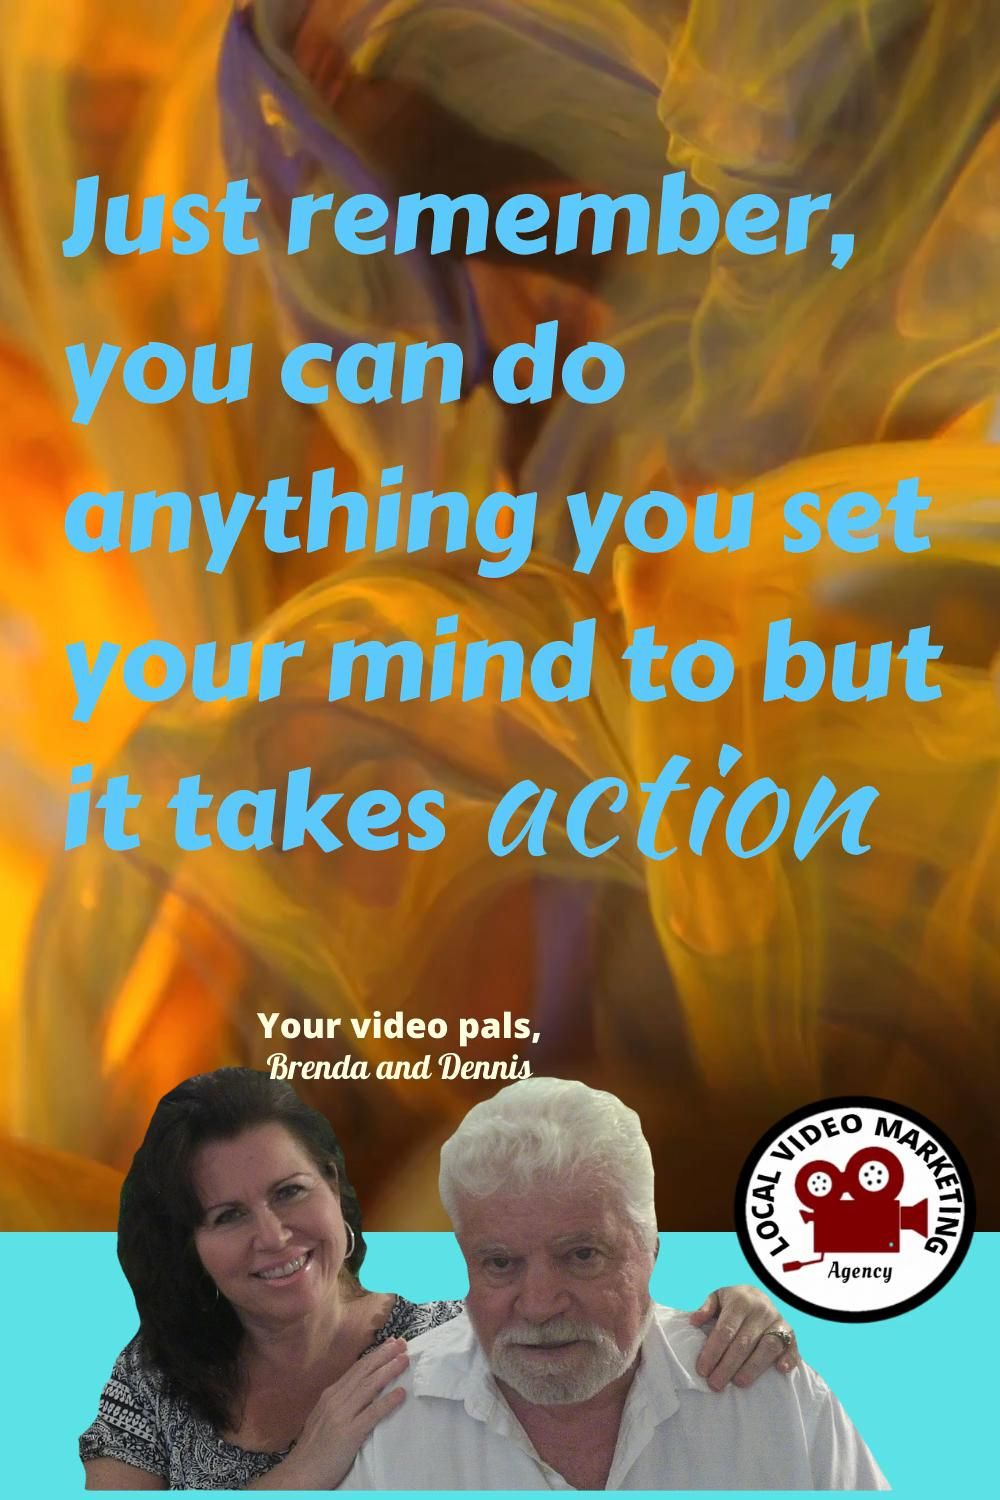 They say Action speaks louder than words and just think if you do that in your business? One type of action is to be consistent with your message to your audience #video #localvideomarketing #success #thursdayvibes #thursdaythoughts